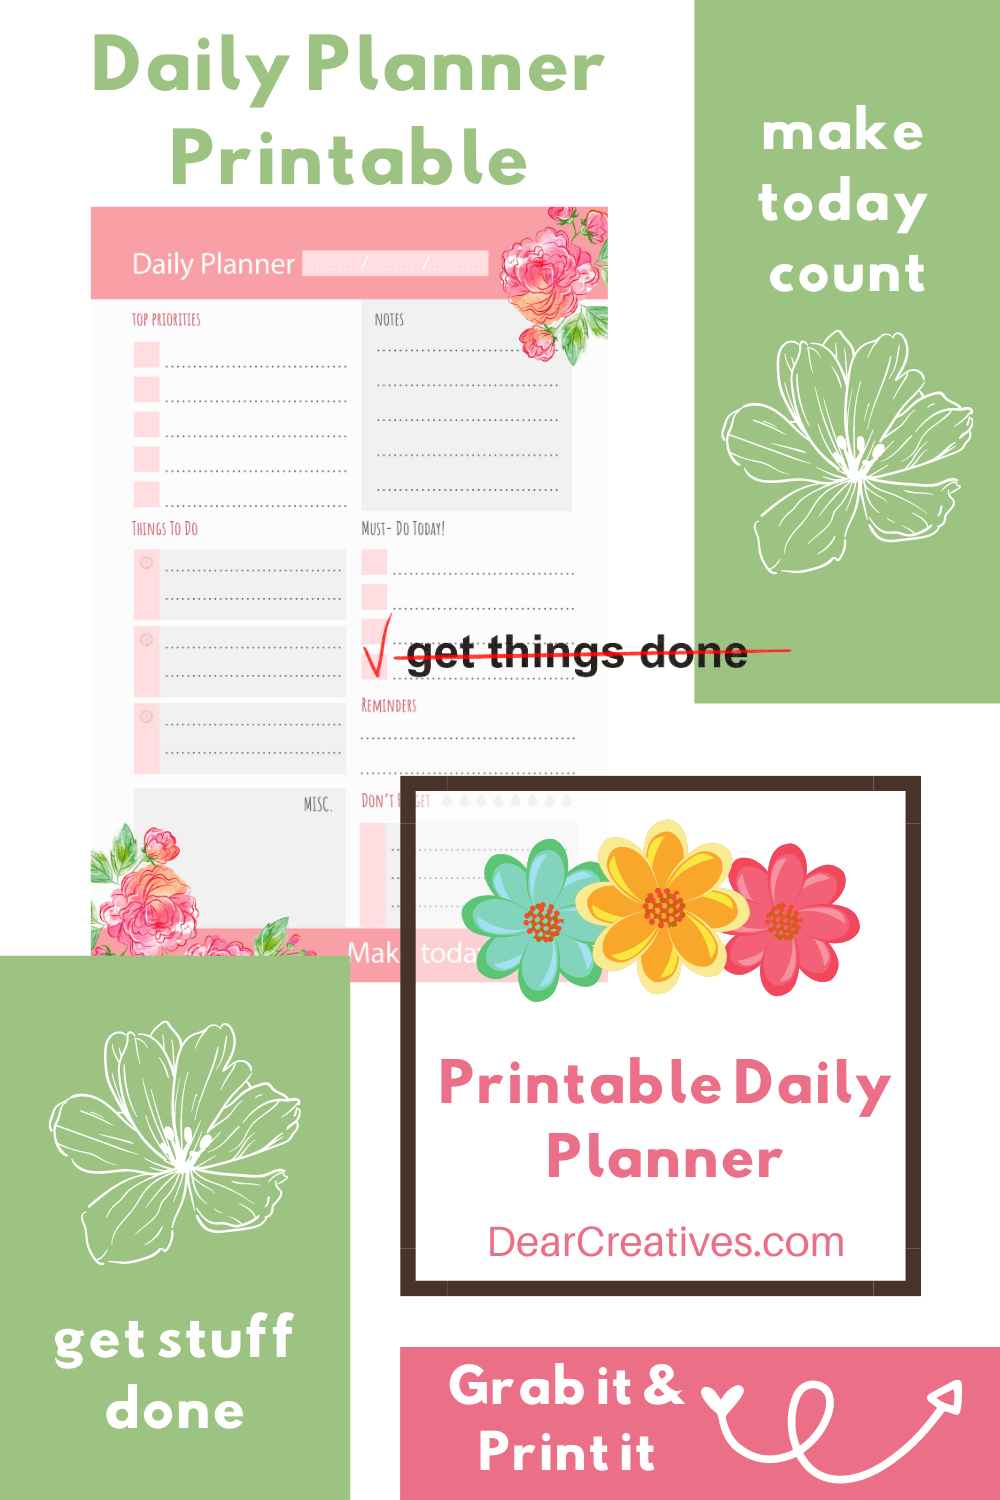 Daily Planner Printable – Make Today Count!